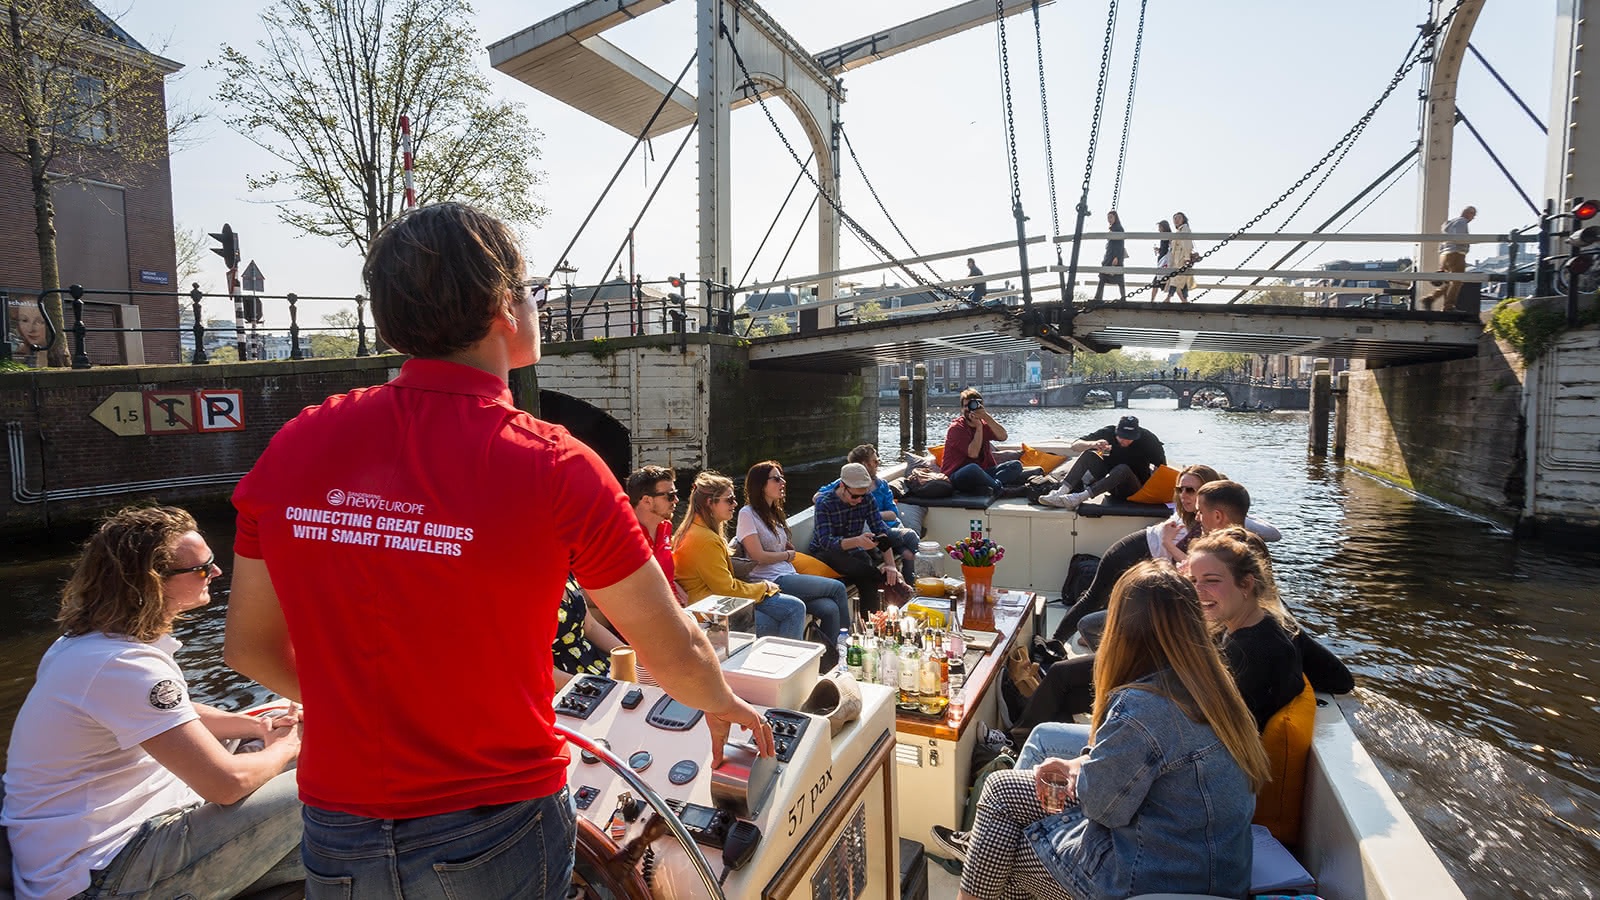 The Amsterdam Boat Tour going under the Magere Brug